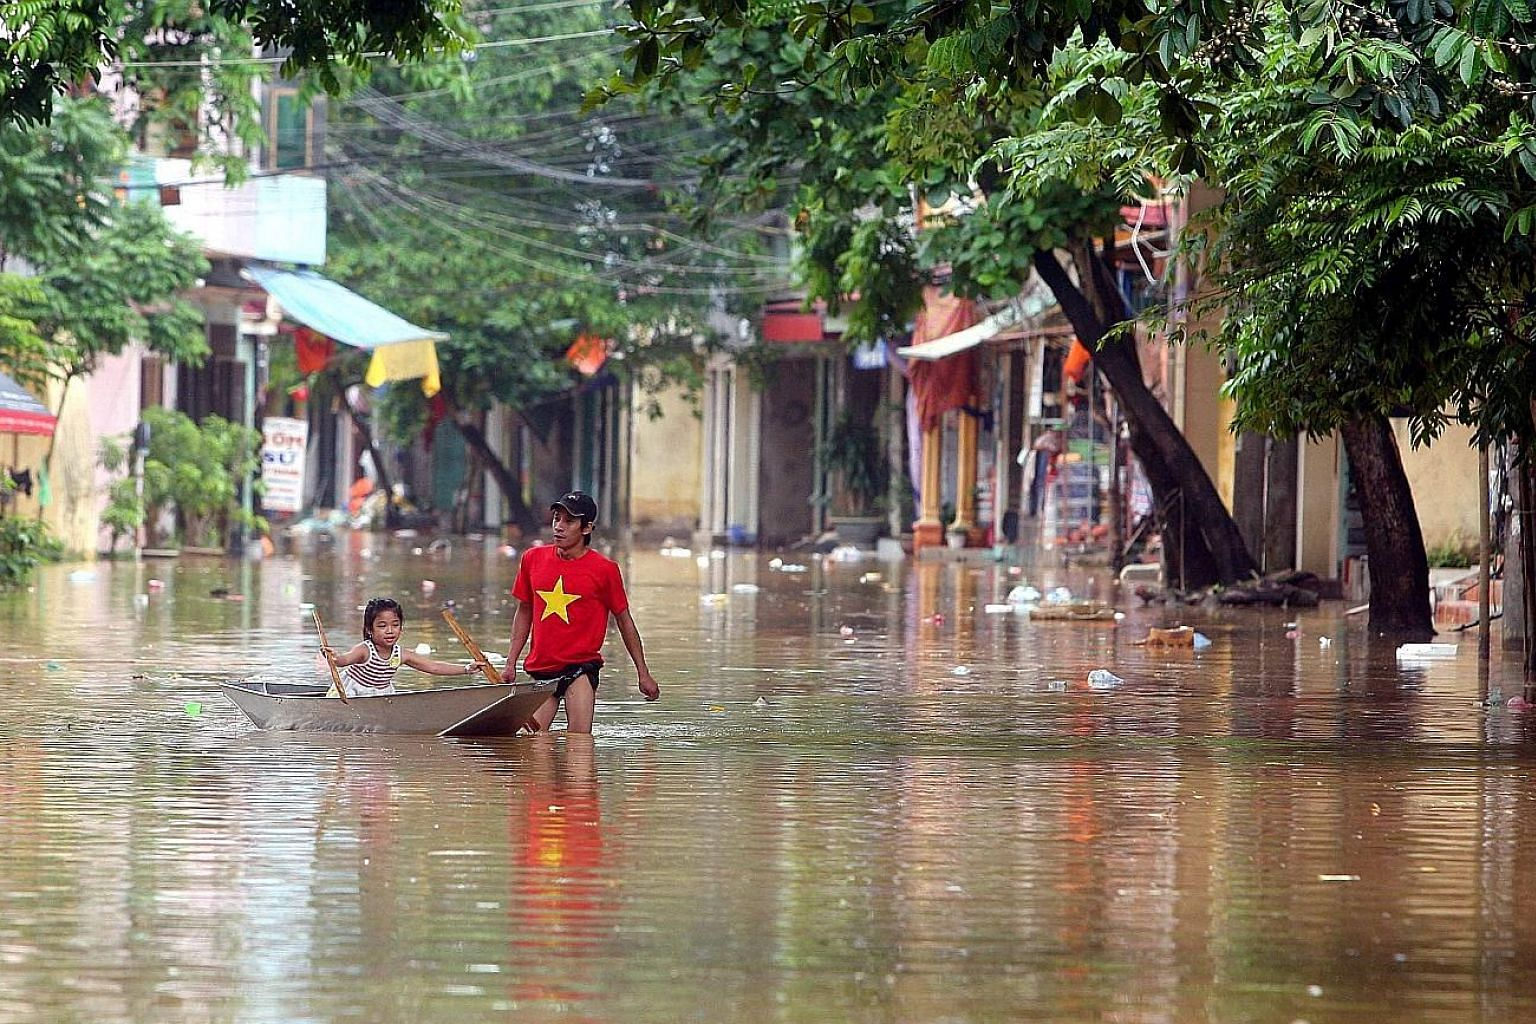 A man pulling a boat with his daughter inside through a flooded street in Yen Bai province, Vietnam, yesterday. More rainfall, measuring 100 to 200mm, is forecast to hit north-east and north central Vietnam in the next few days.